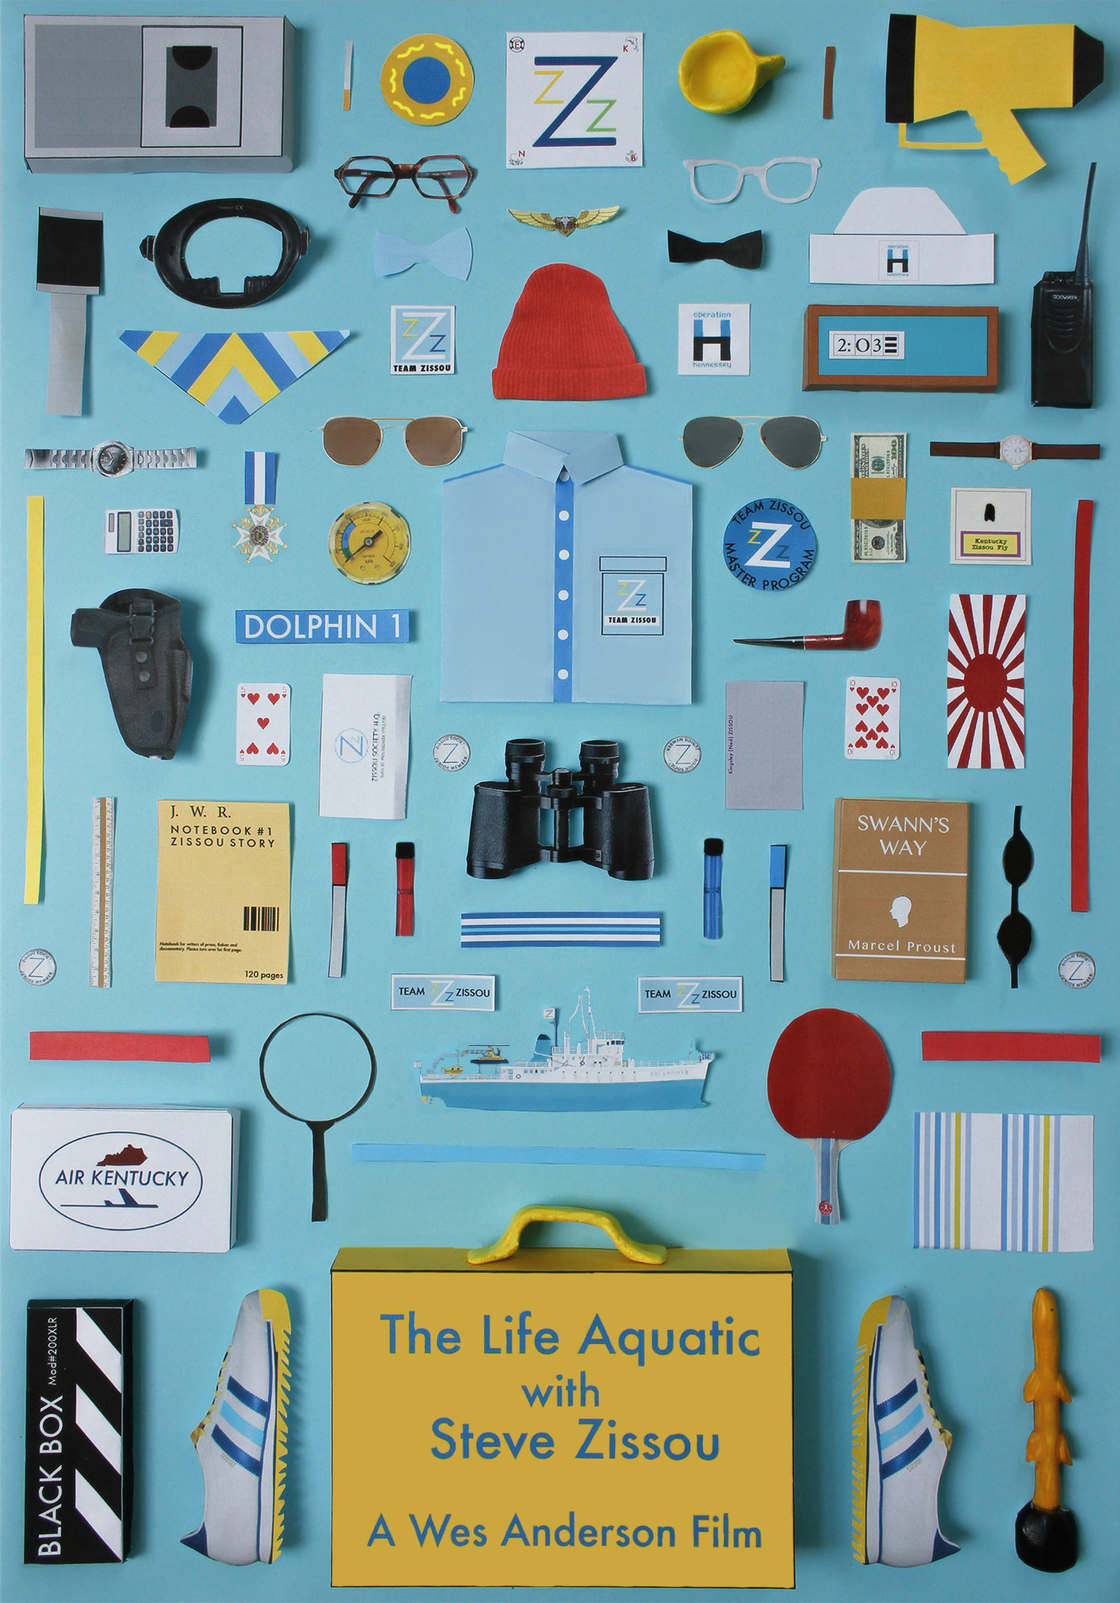 The iconic objects of cult movies together in a new poster series